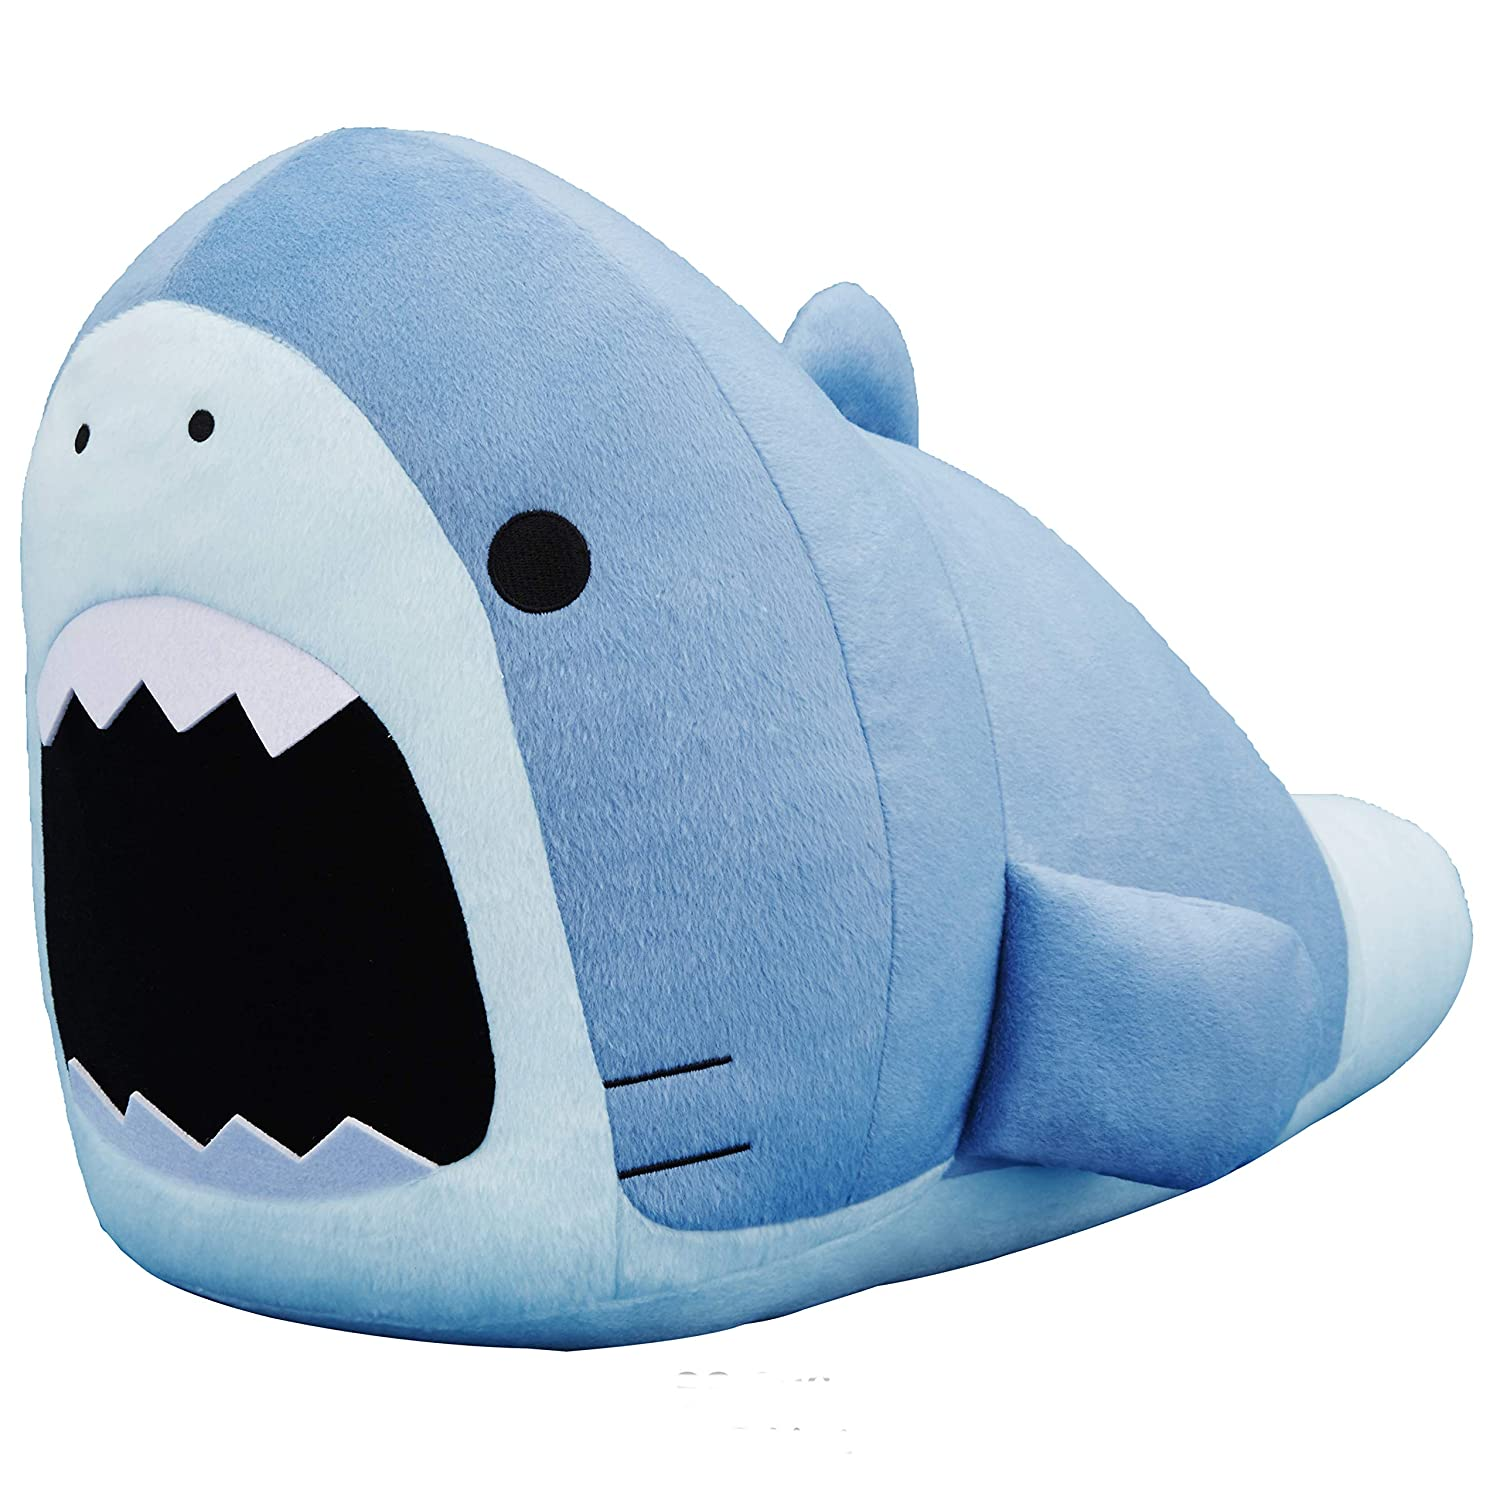 CLEVER IDIOTS INC SAMEZU Plush XL Stuffed Animal Shark - Cute, Collectable and Cuddly Toy Character - Ultra-Soft Polyester Fabric - Authentic Japanese Kawaii Design - Premium Quality (Megalo)